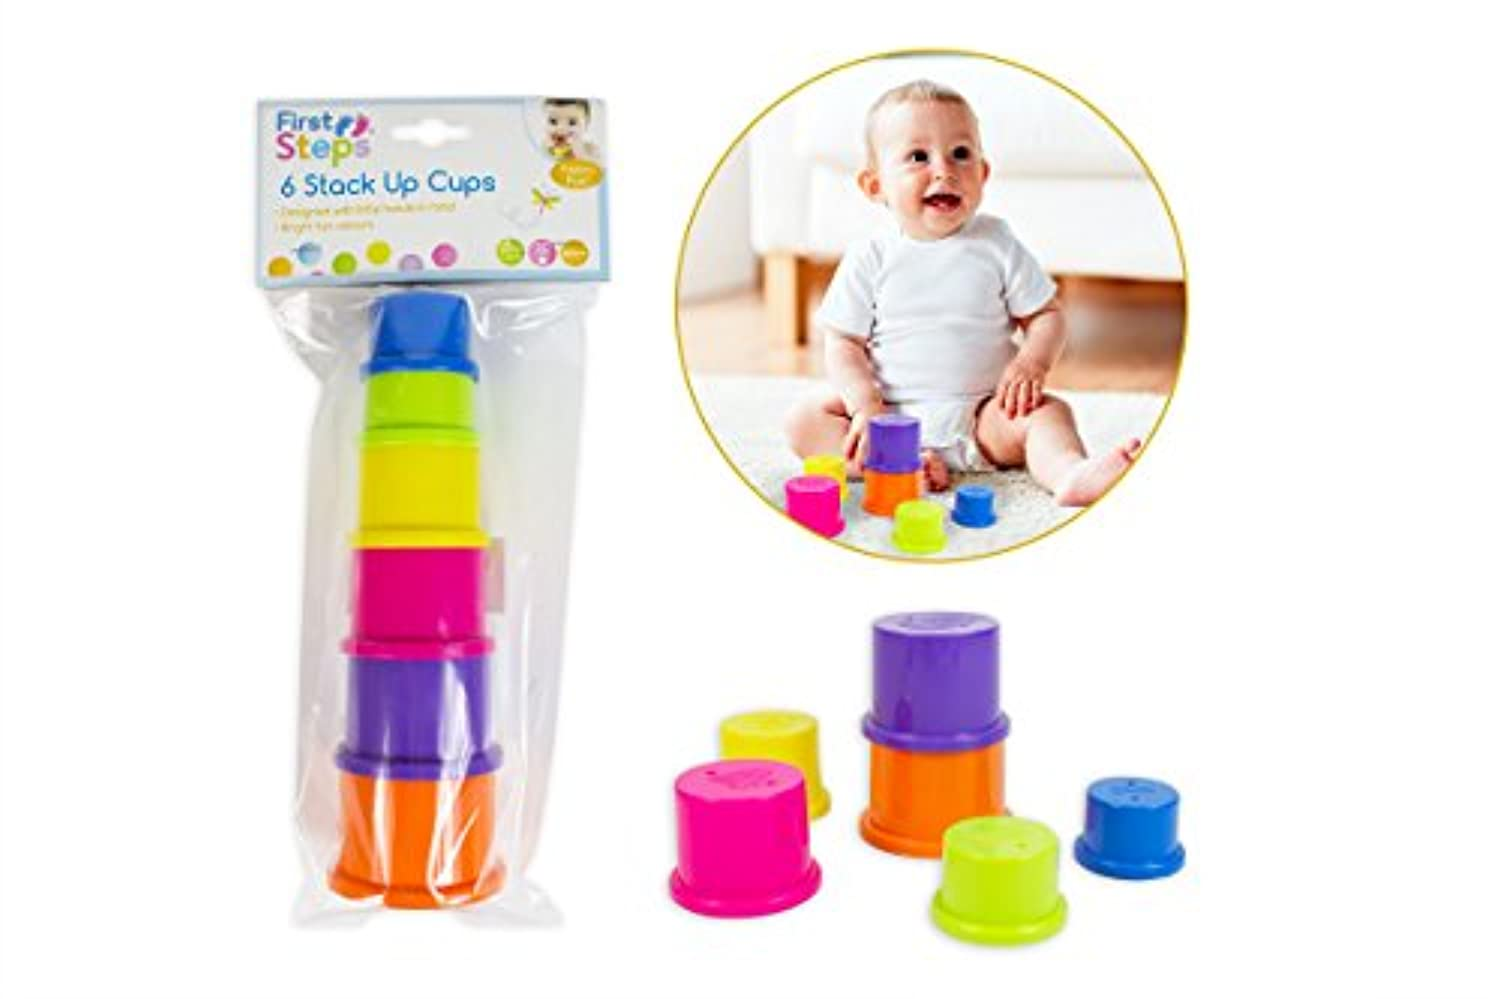 First Steps - 6 Coloured Stack Up Cups - Ideal For 6 Months +